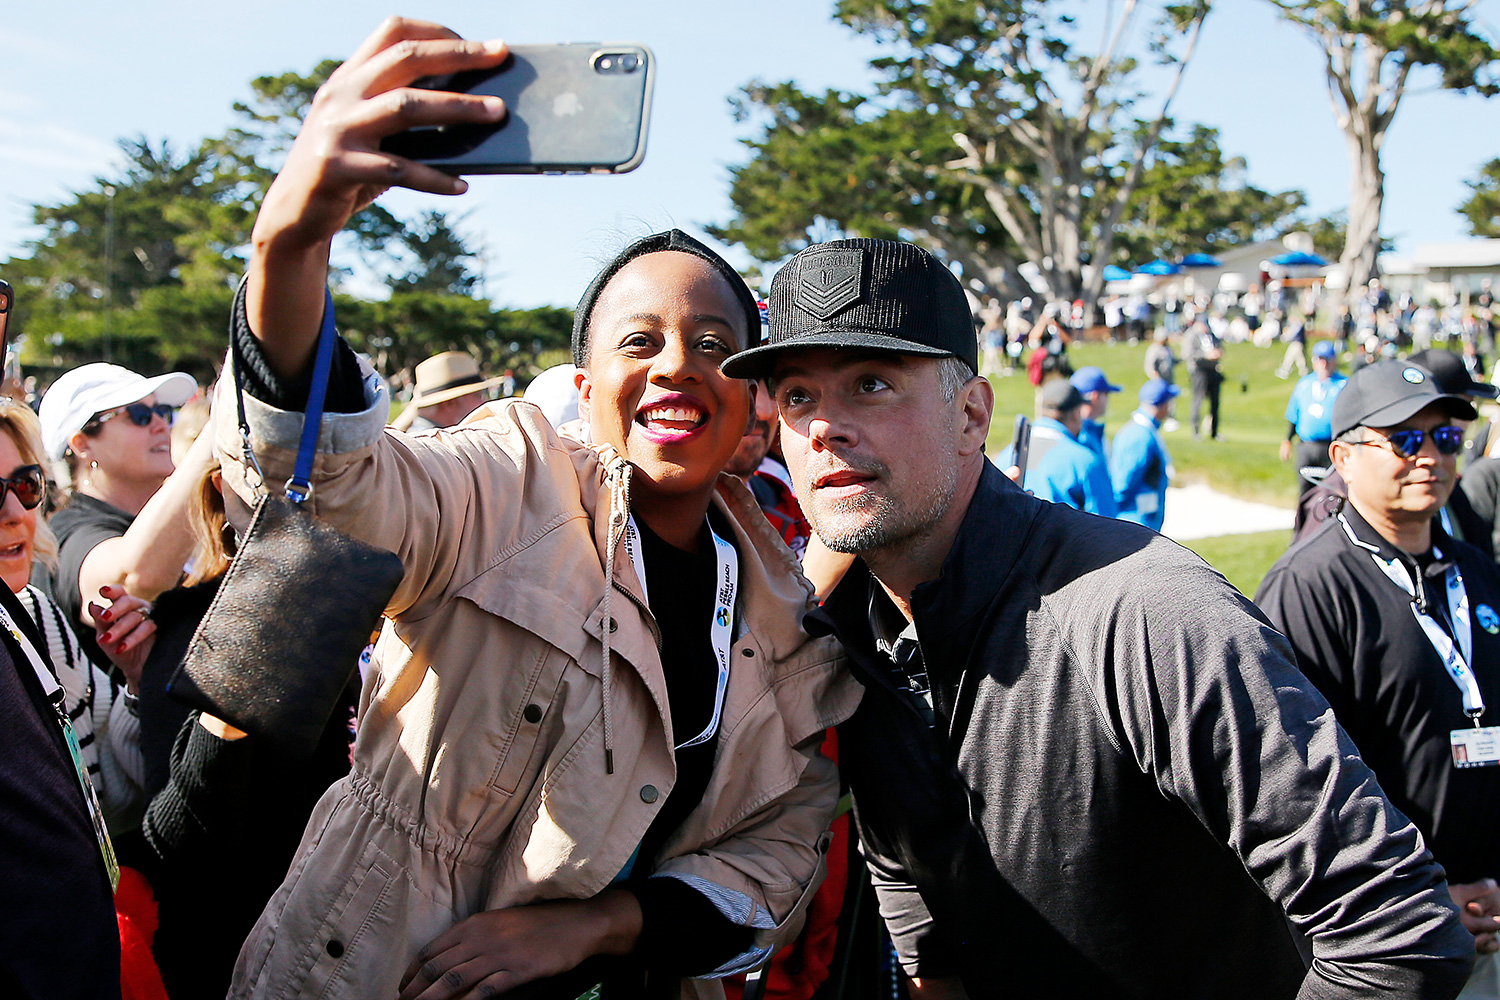 Josh Duhamel takes a selfie with a fan during the 3M Celebrity Challenge prior to the AT&T Pebble Beach Pro-Am at Pebble Beach Golf Links on February 05, 2020 in Pebble Beach, California